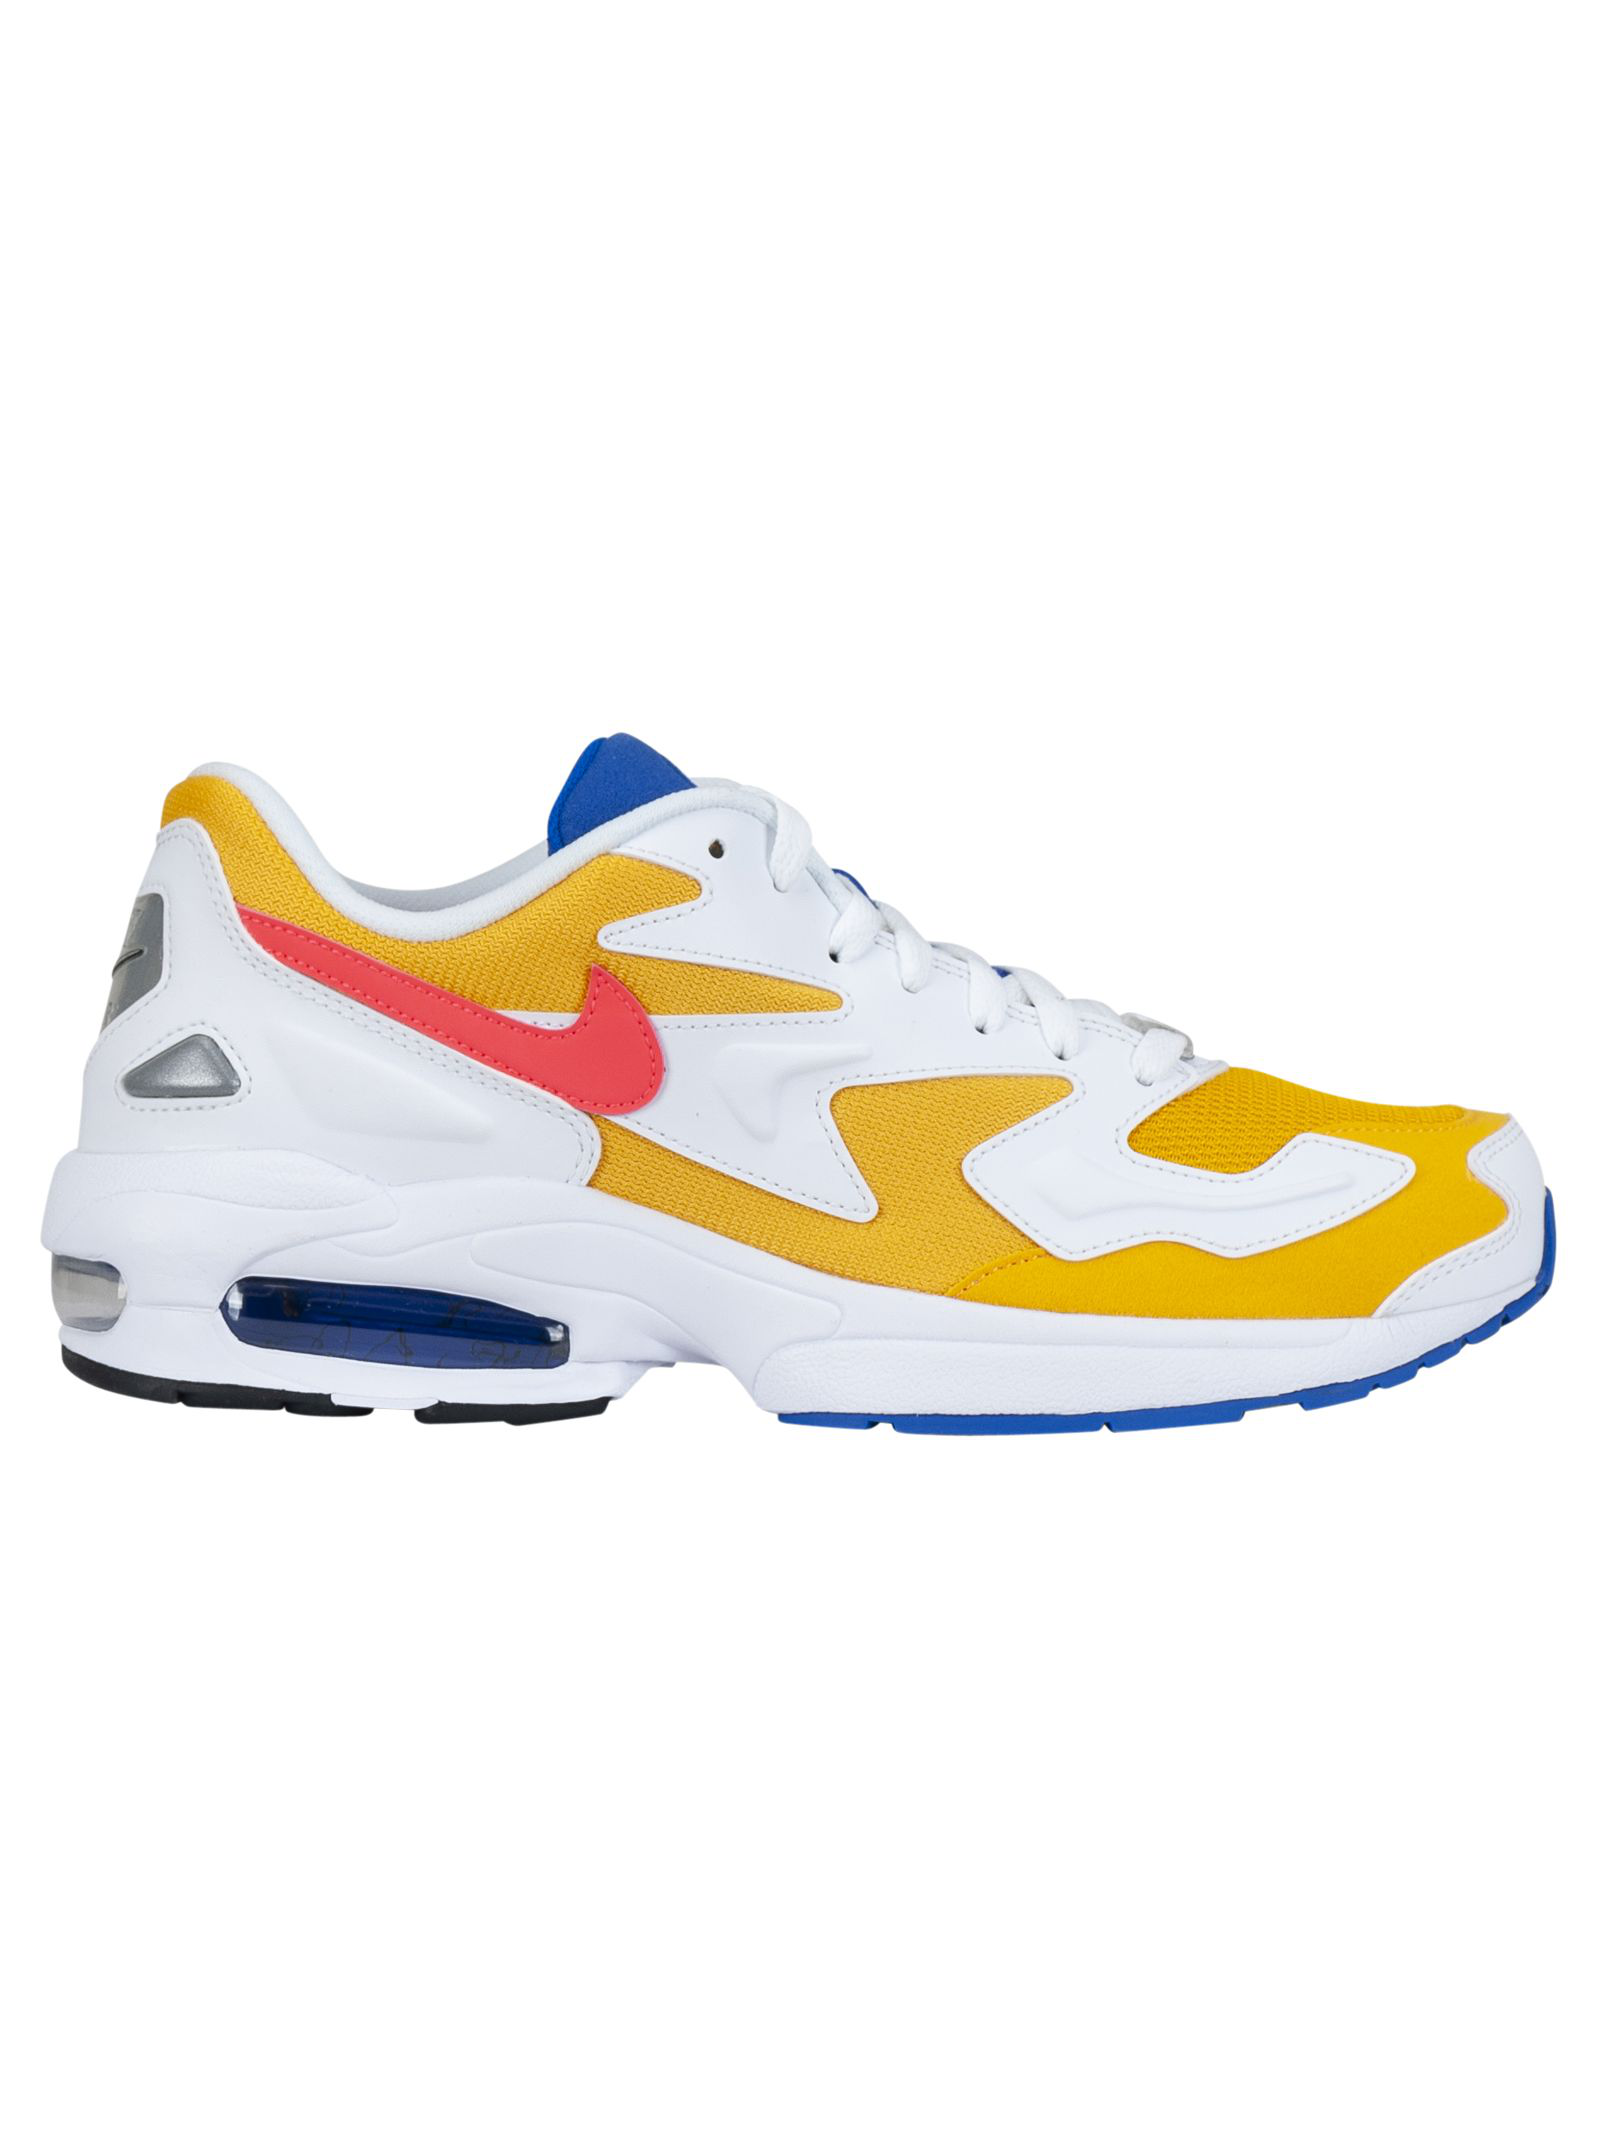 d3d775d80f Nike Air Max 2 Light Leather And Suede Sneakers In Gldflshblu | ModeSens